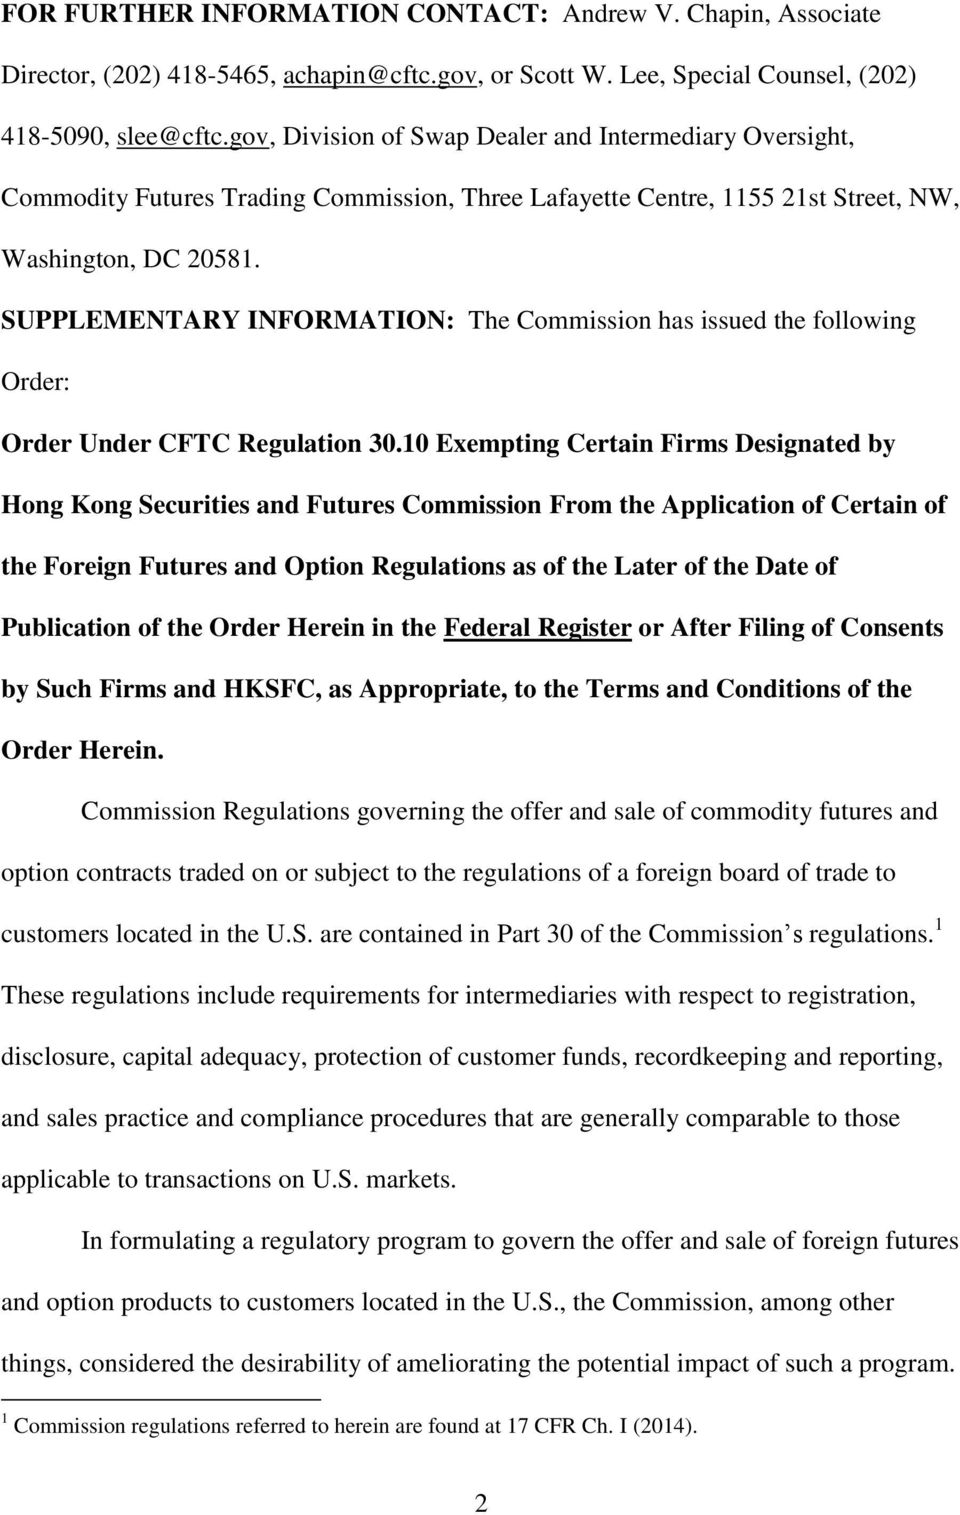 SUPPLEMENTARY INFORMATION: The Commission has issued the following Order: Order Under CFTC Regulation 30.